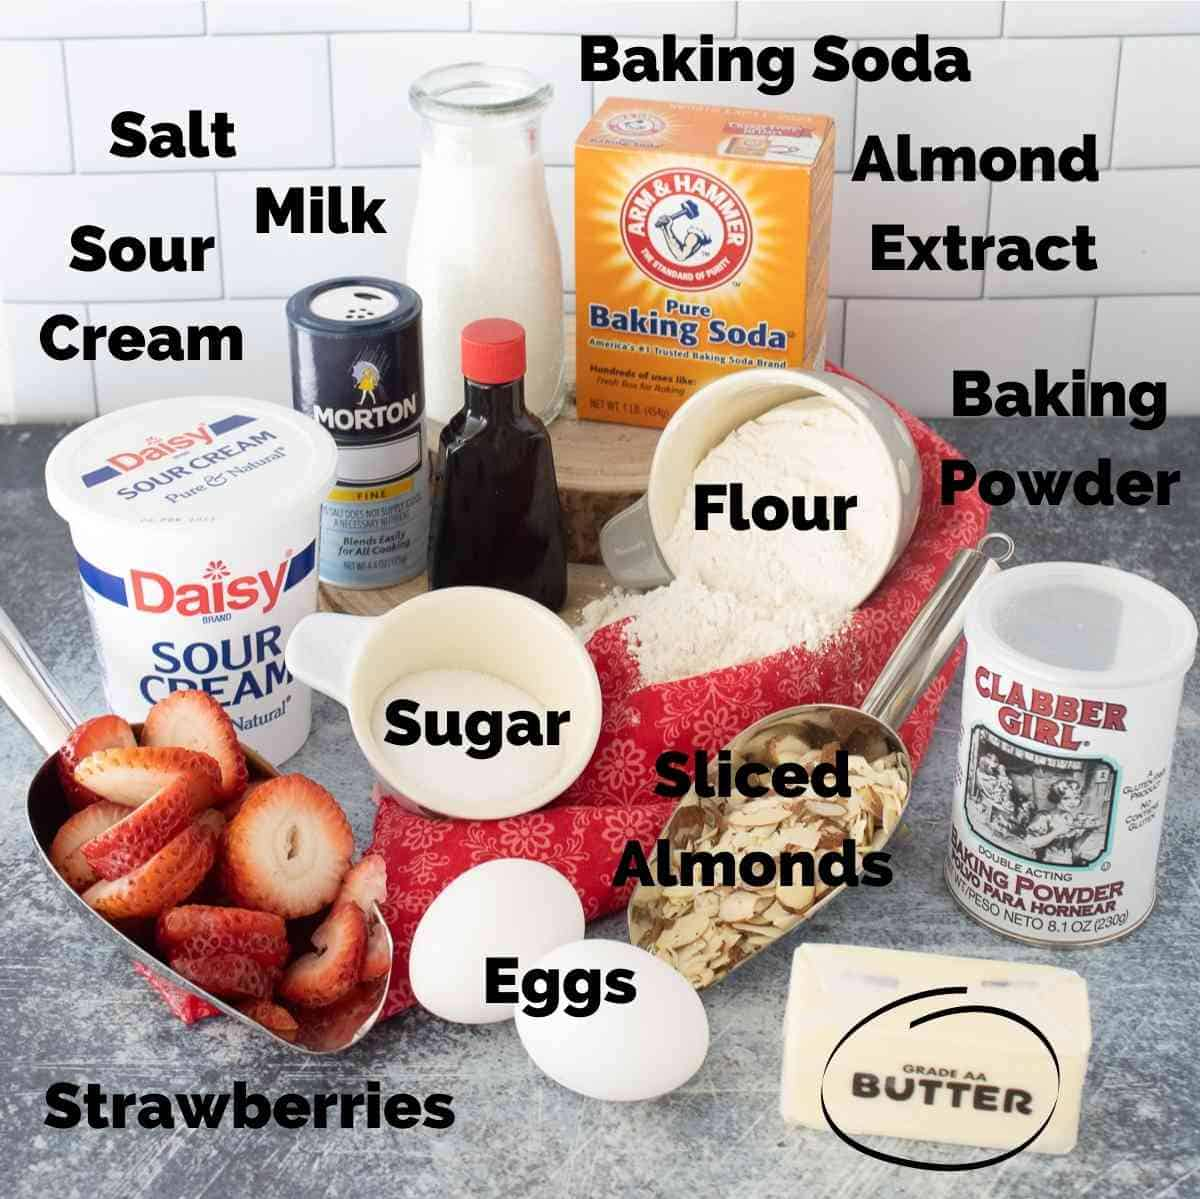 Ingredients for strawberry almond muffins.